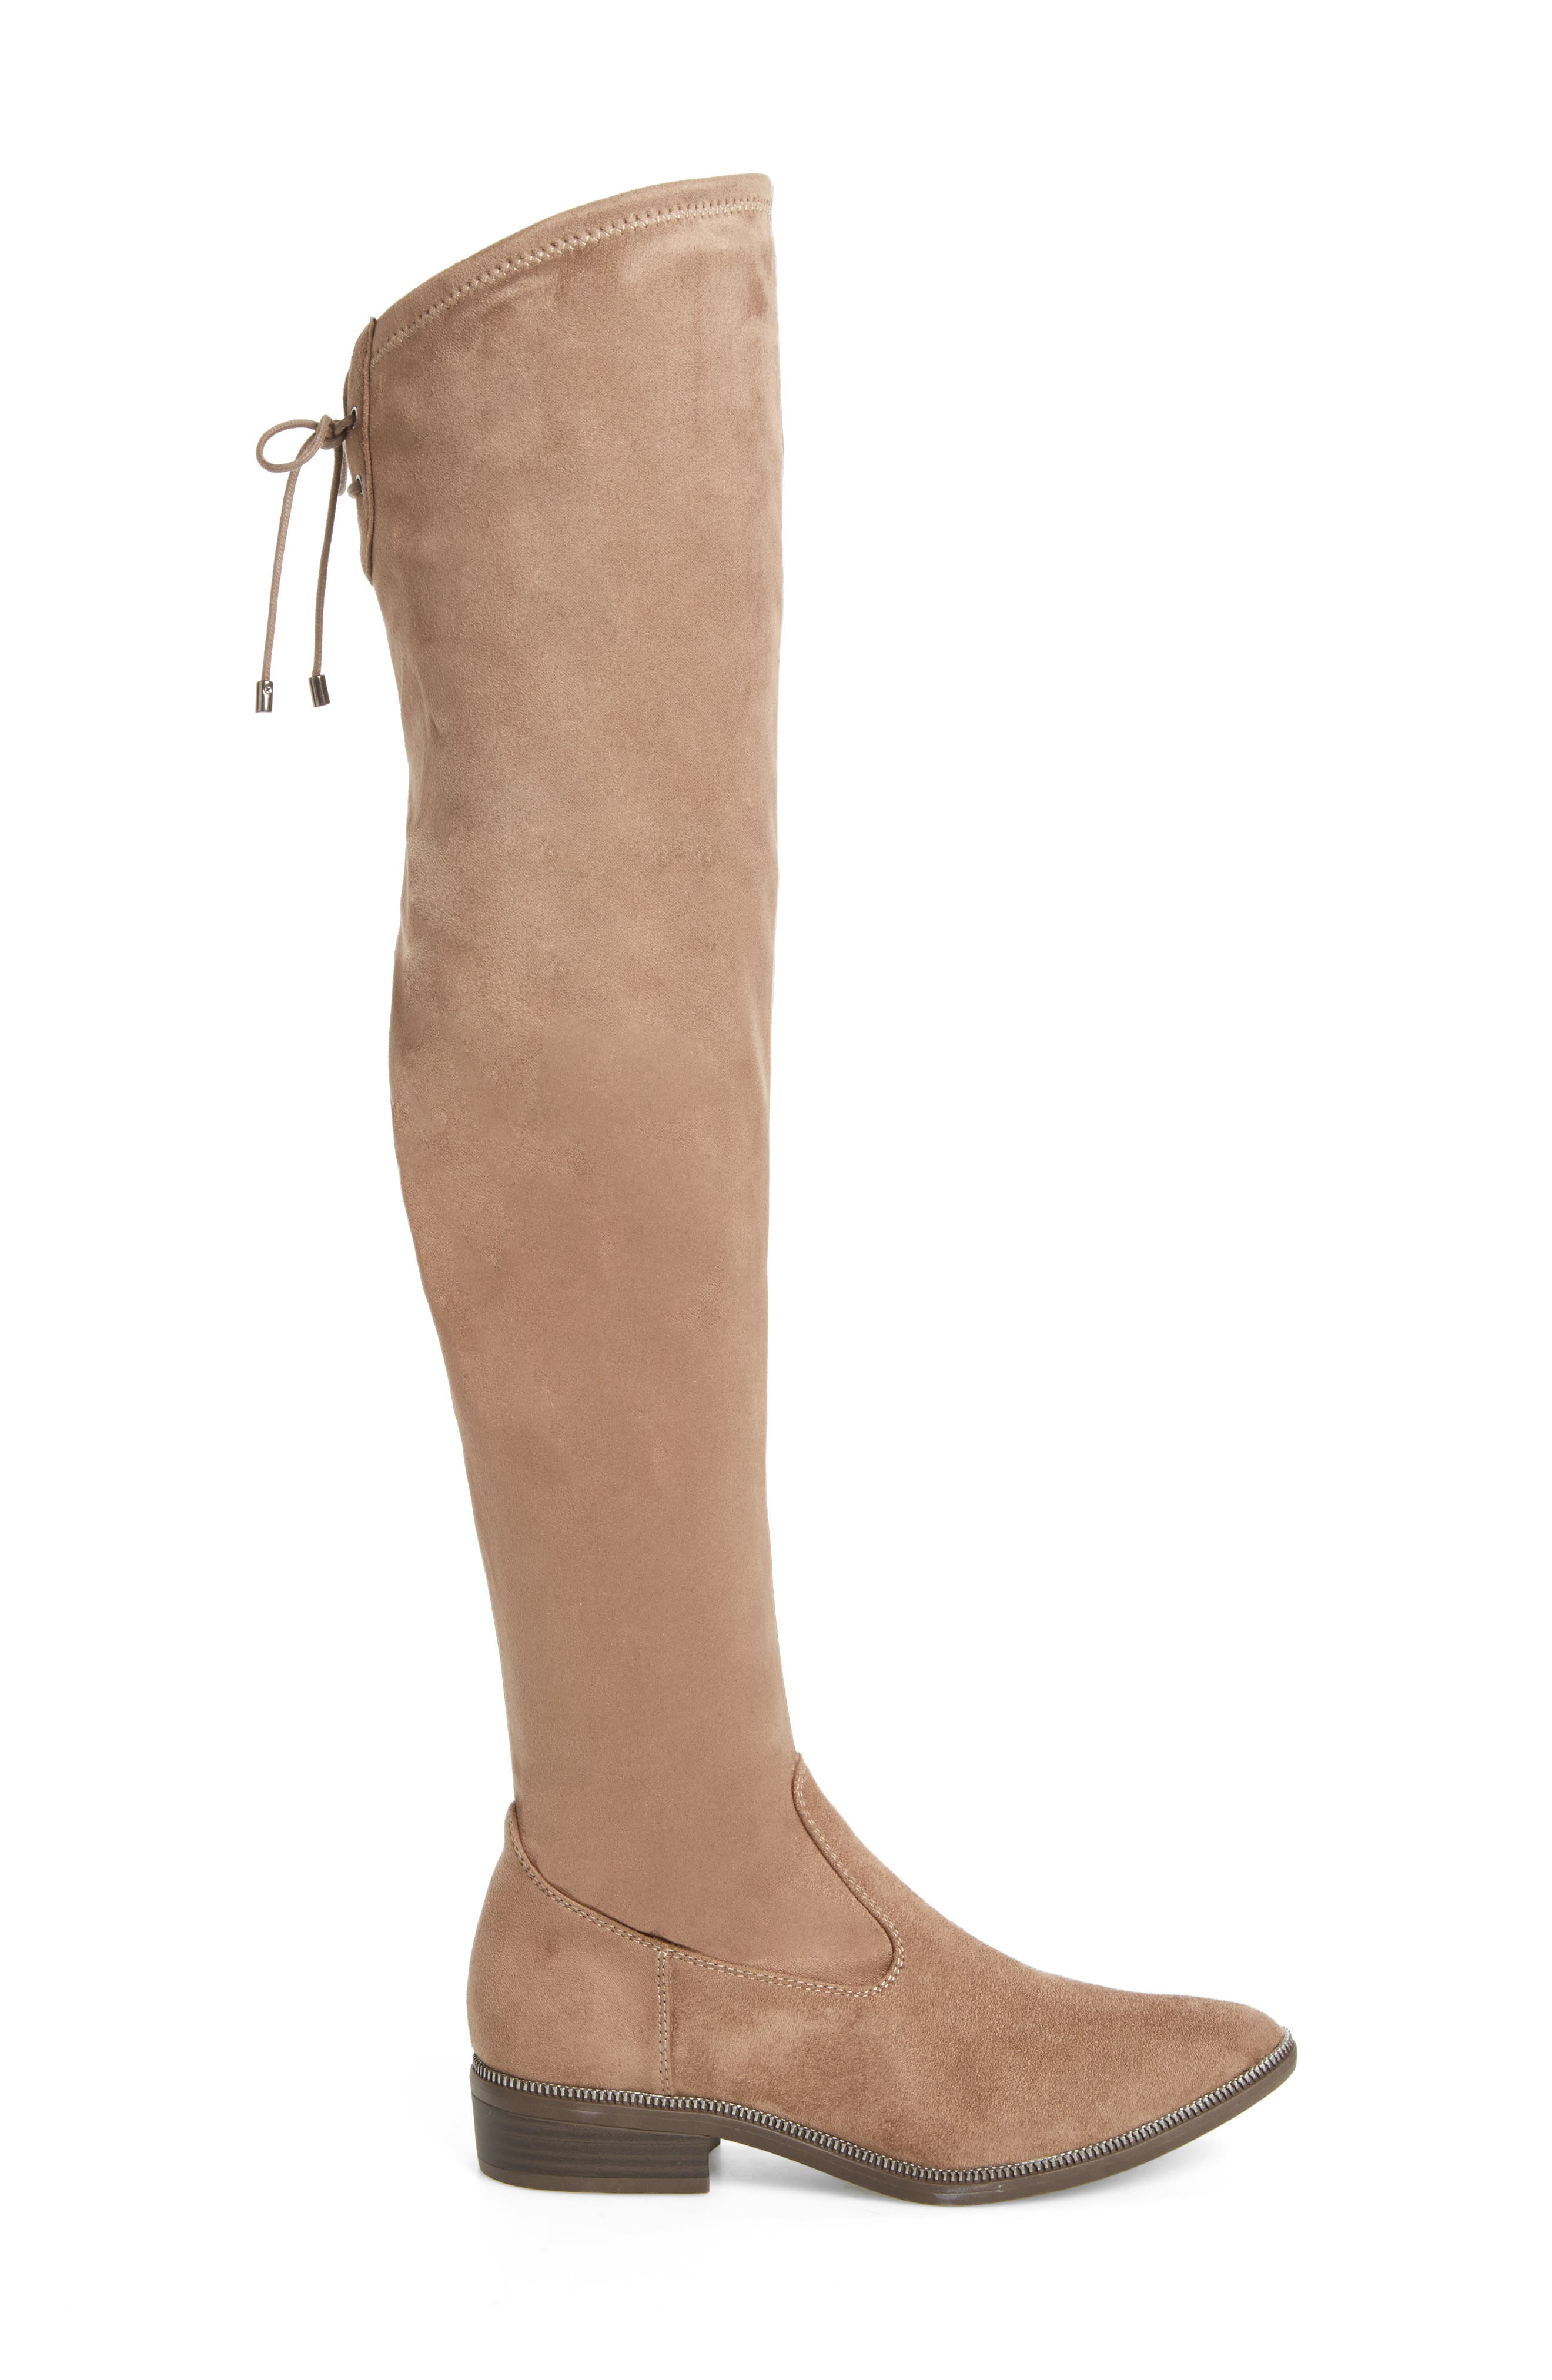 Phanie Over the Knee Stretch Boot,                             Alternate thumbnail 6, color,